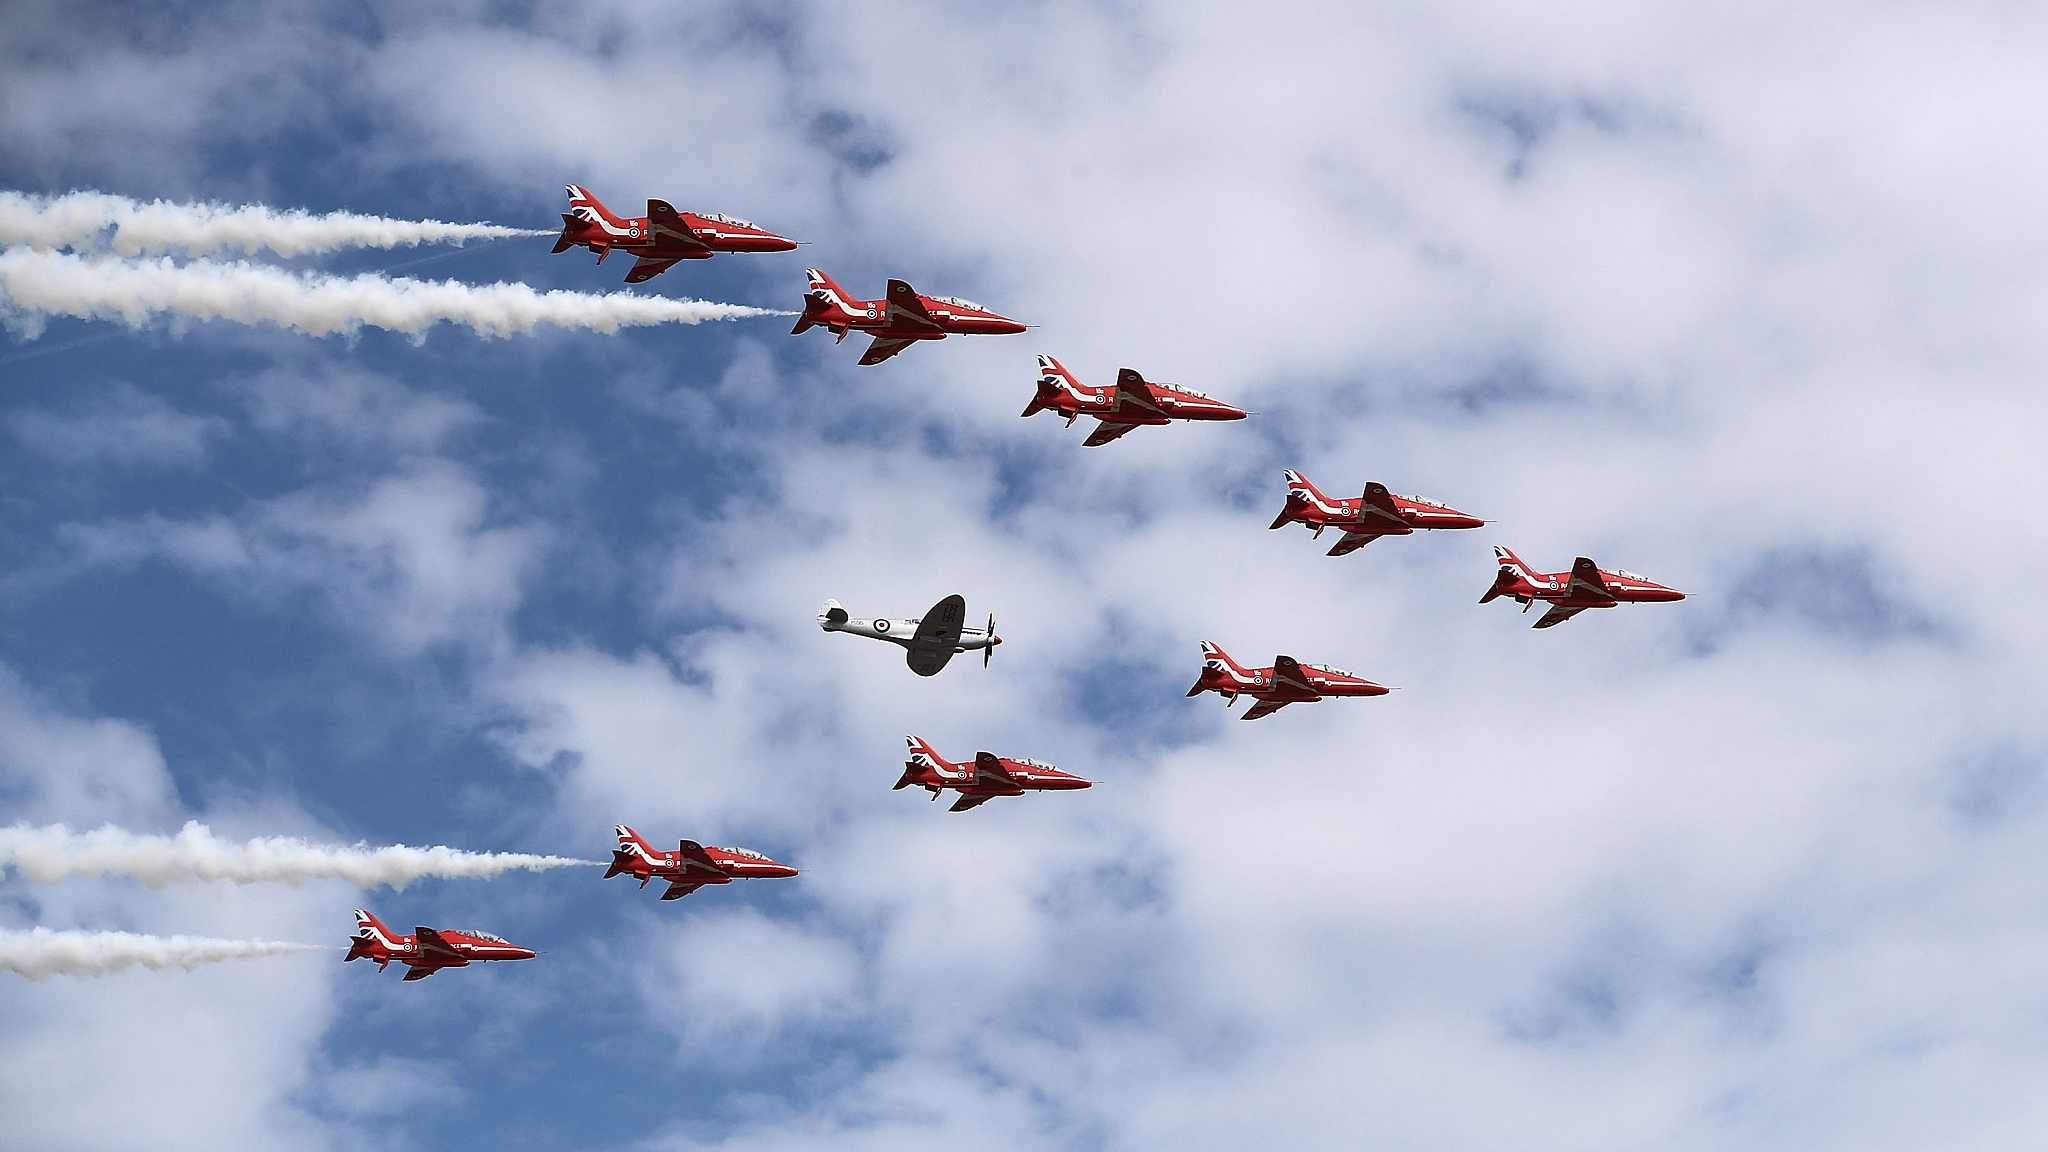 The Red Arrow performs at the opening of 2018 Farnborough Airshow in the UK